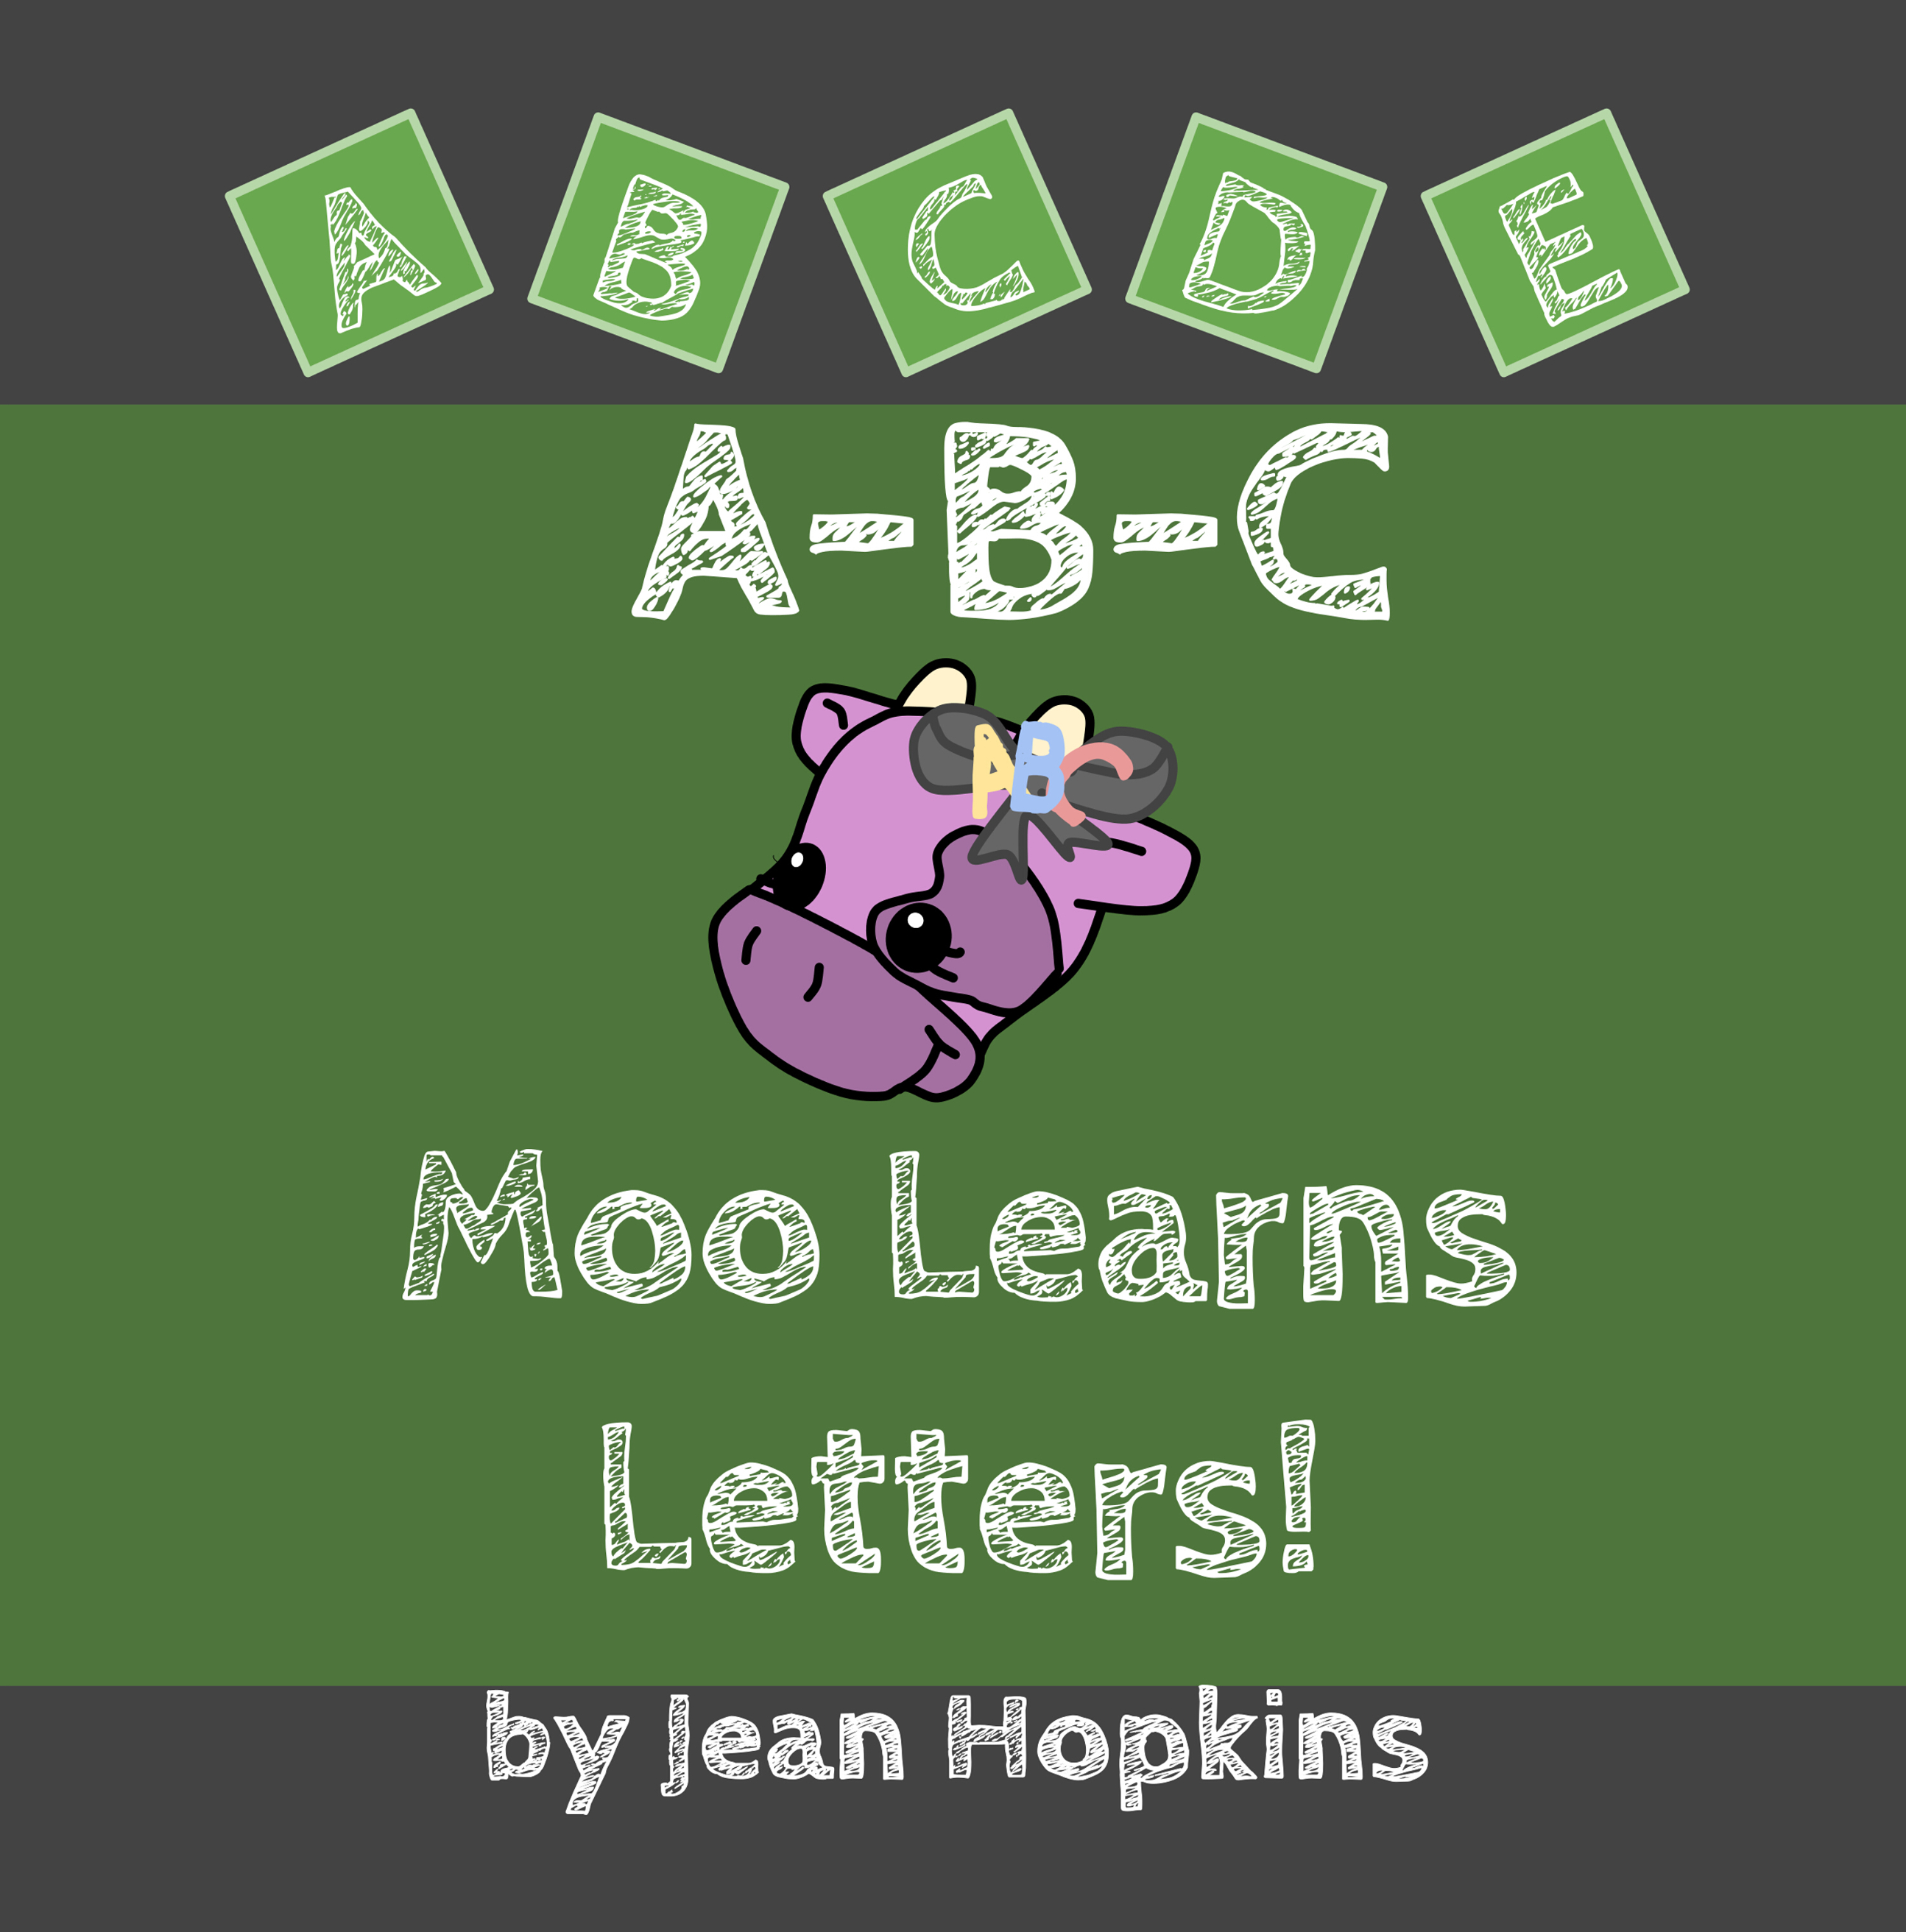 000 - Moo Alphabet Cover_1